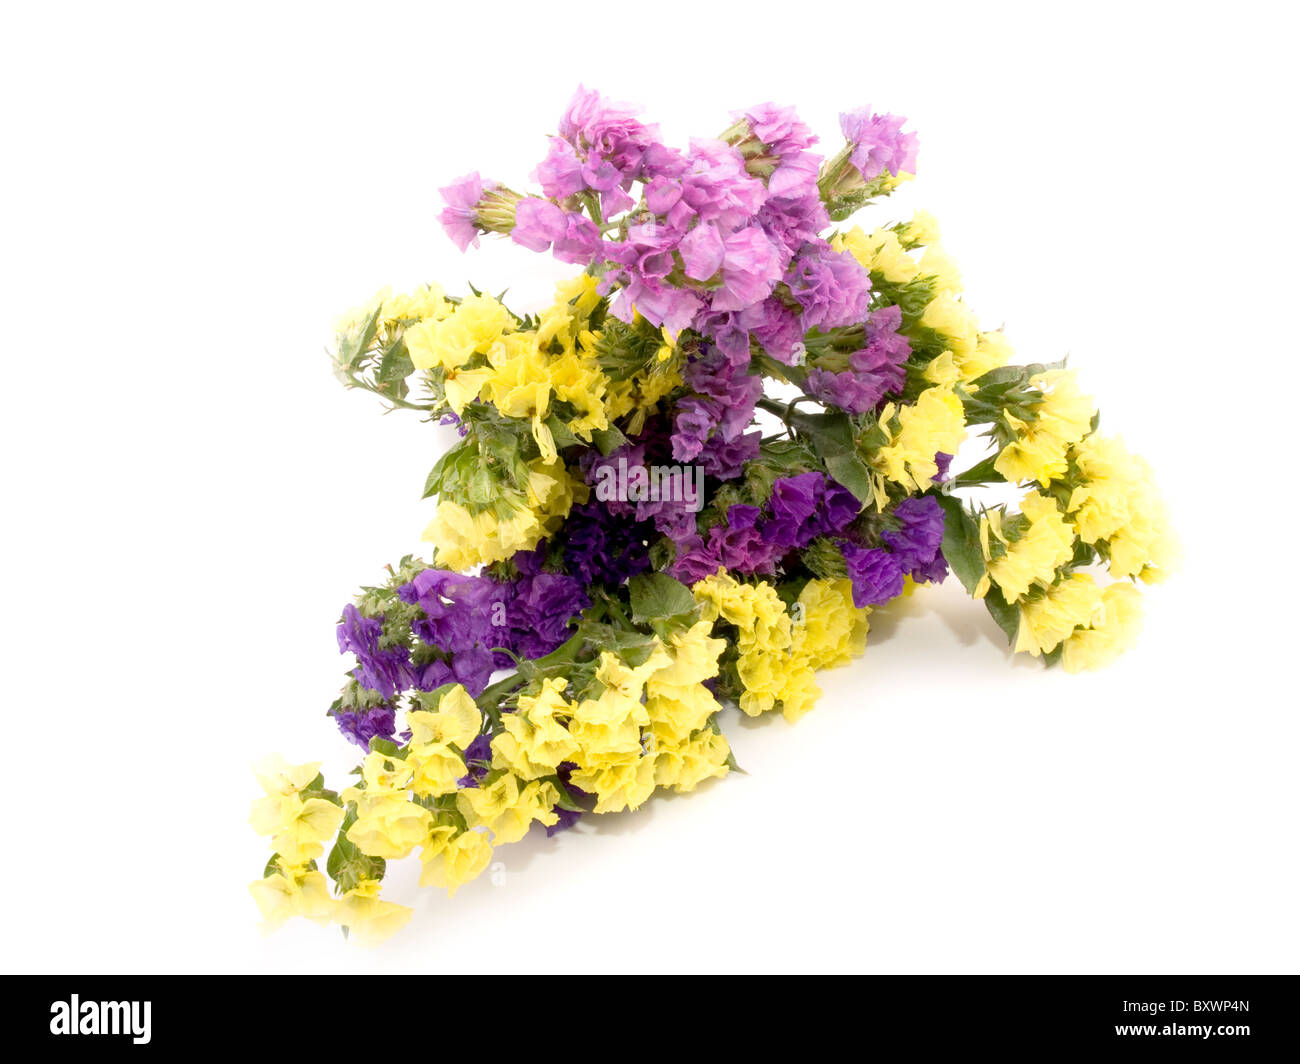 Bouquet of beautiful statice flowers on white background stock photo bouquet of beautiful statice flowers on white background mightylinksfo